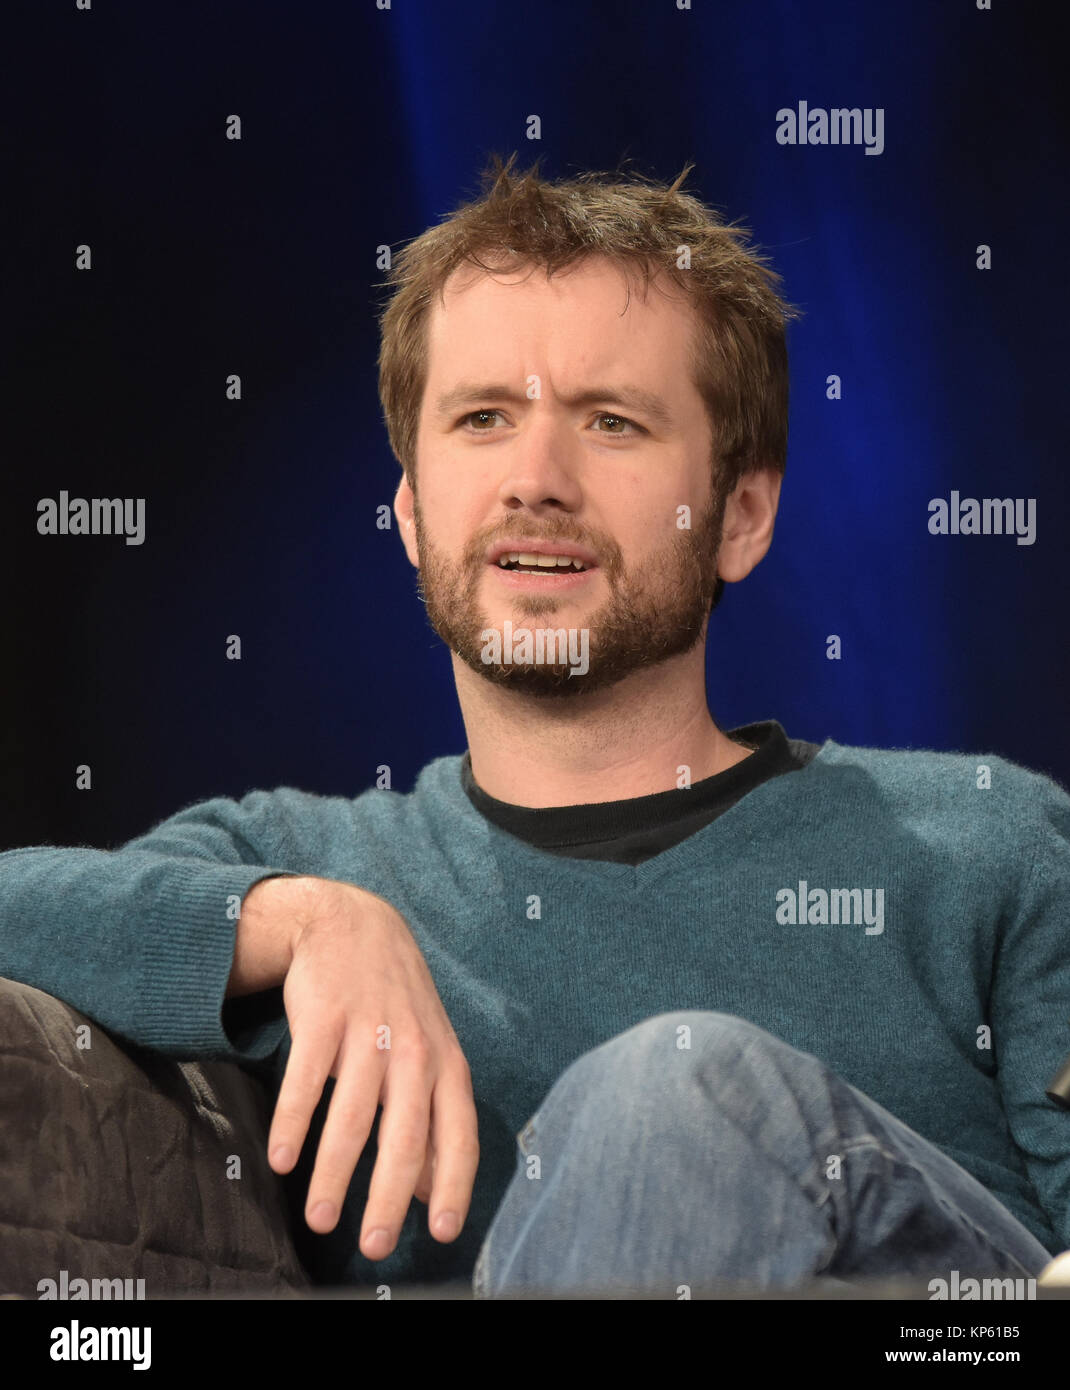 Sean Biggerstaff (born 1983) Sean Biggerstaff (born 1983) new pics